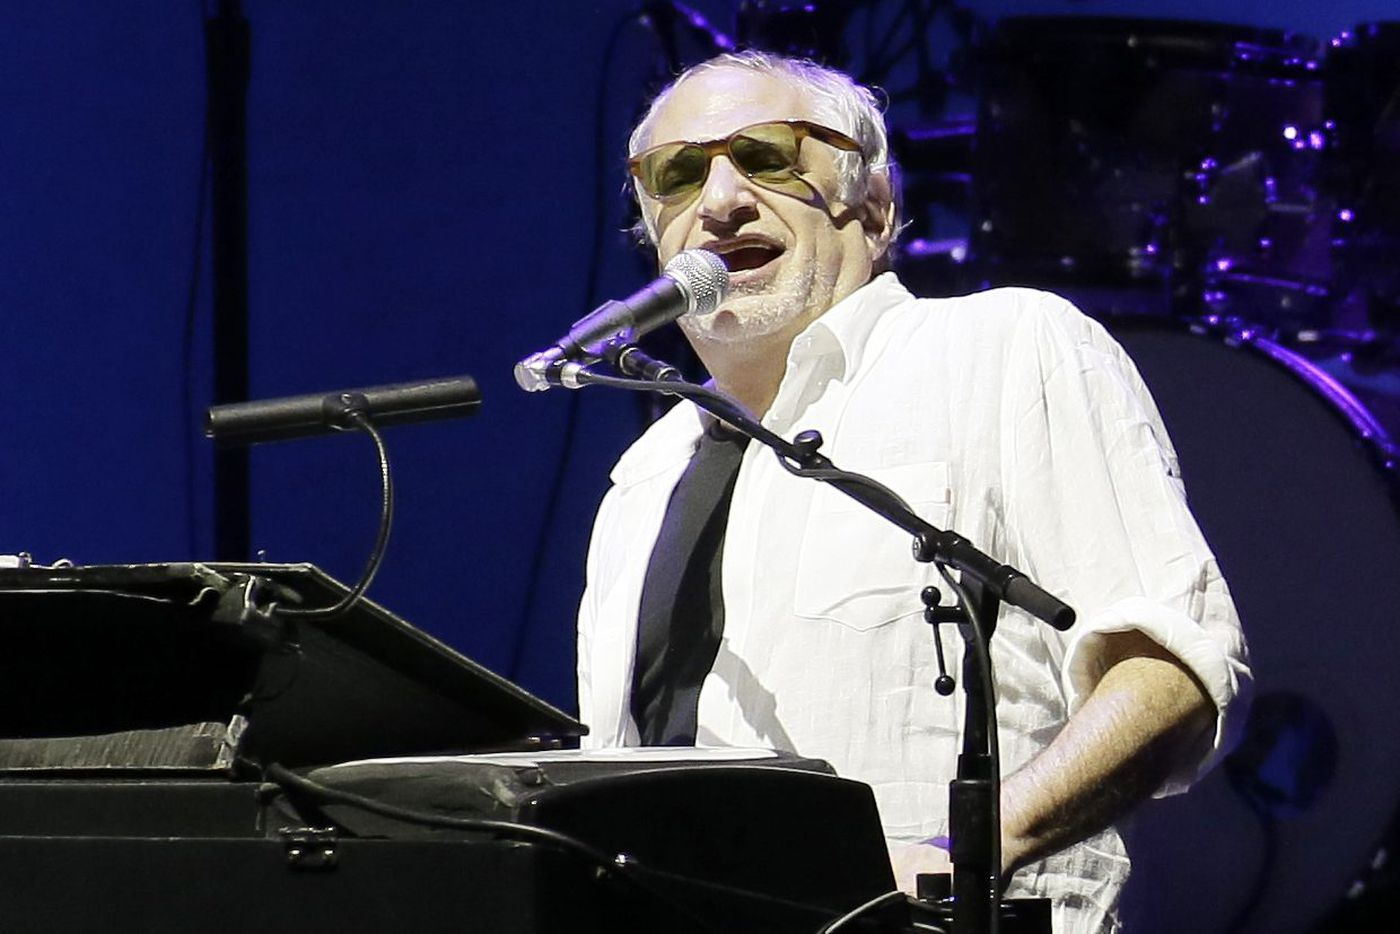 Steely Dan play their first Philly-area show without late member Walter Becker at the BB&T Pavilion